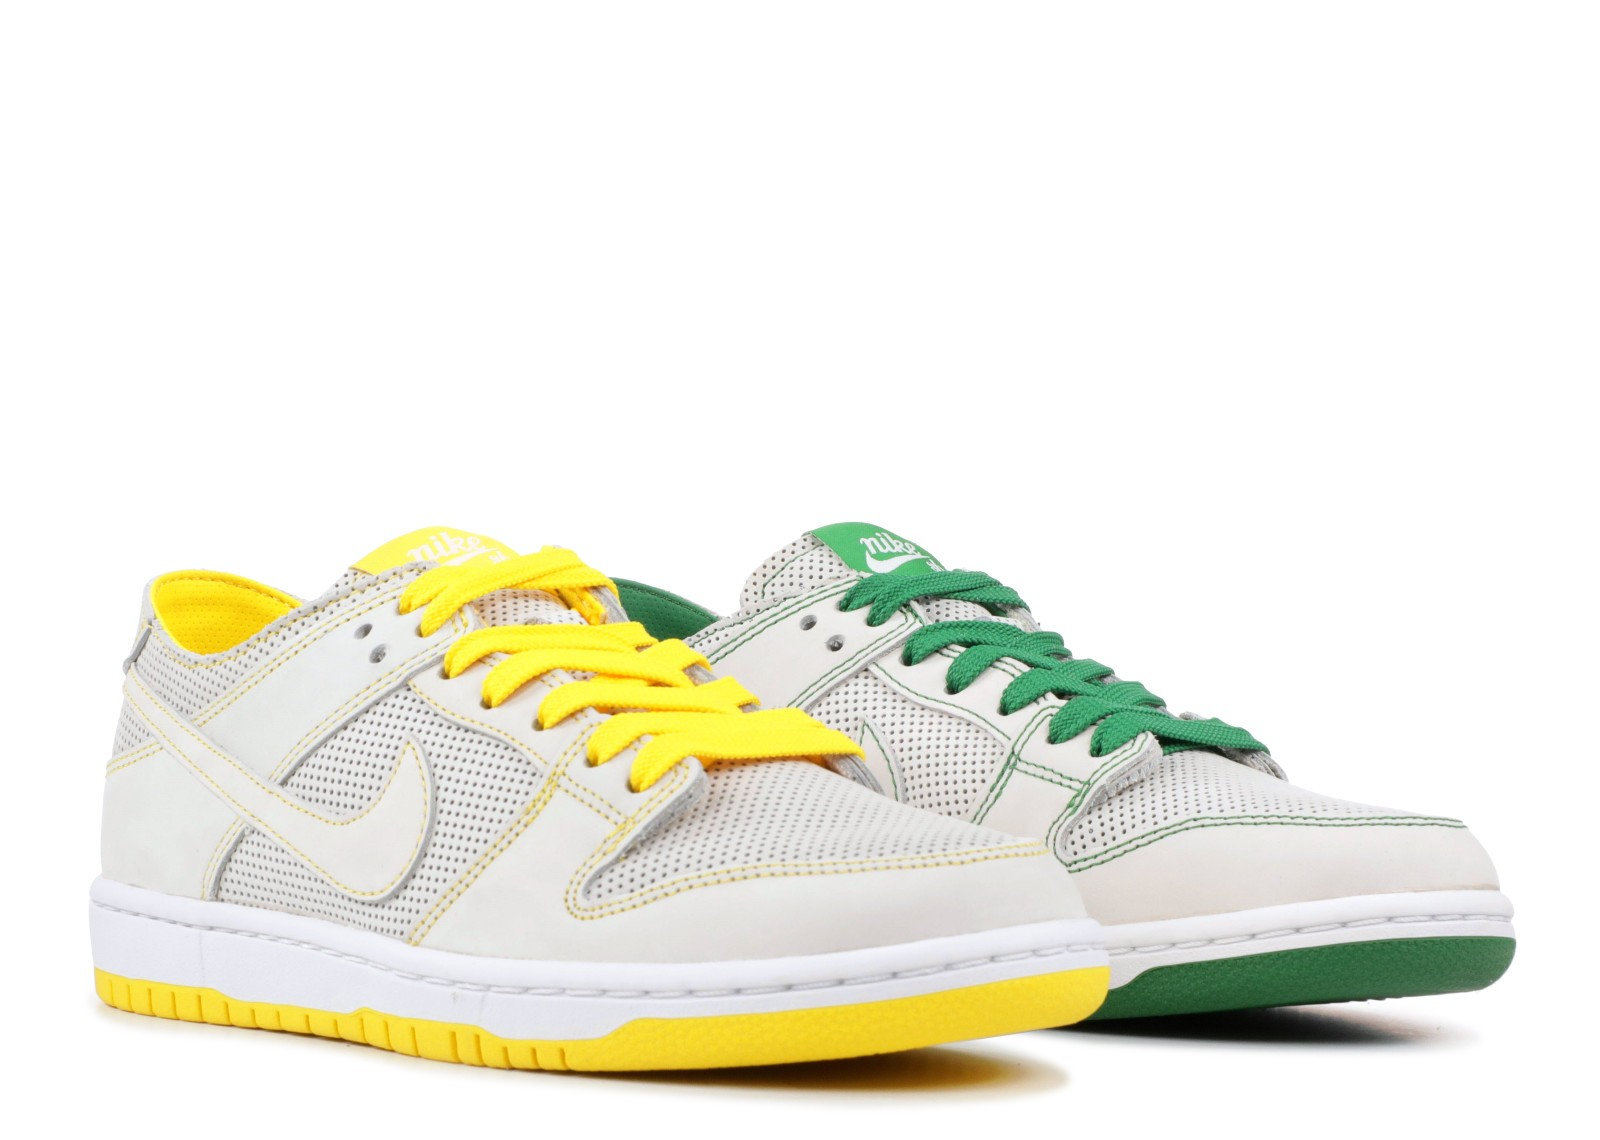 049dc850a2 Prev Nike SB Zoom Dunk Low Pro Decon Qs Ishod Wair White Verde Aloe  AR1399-113. Zoom